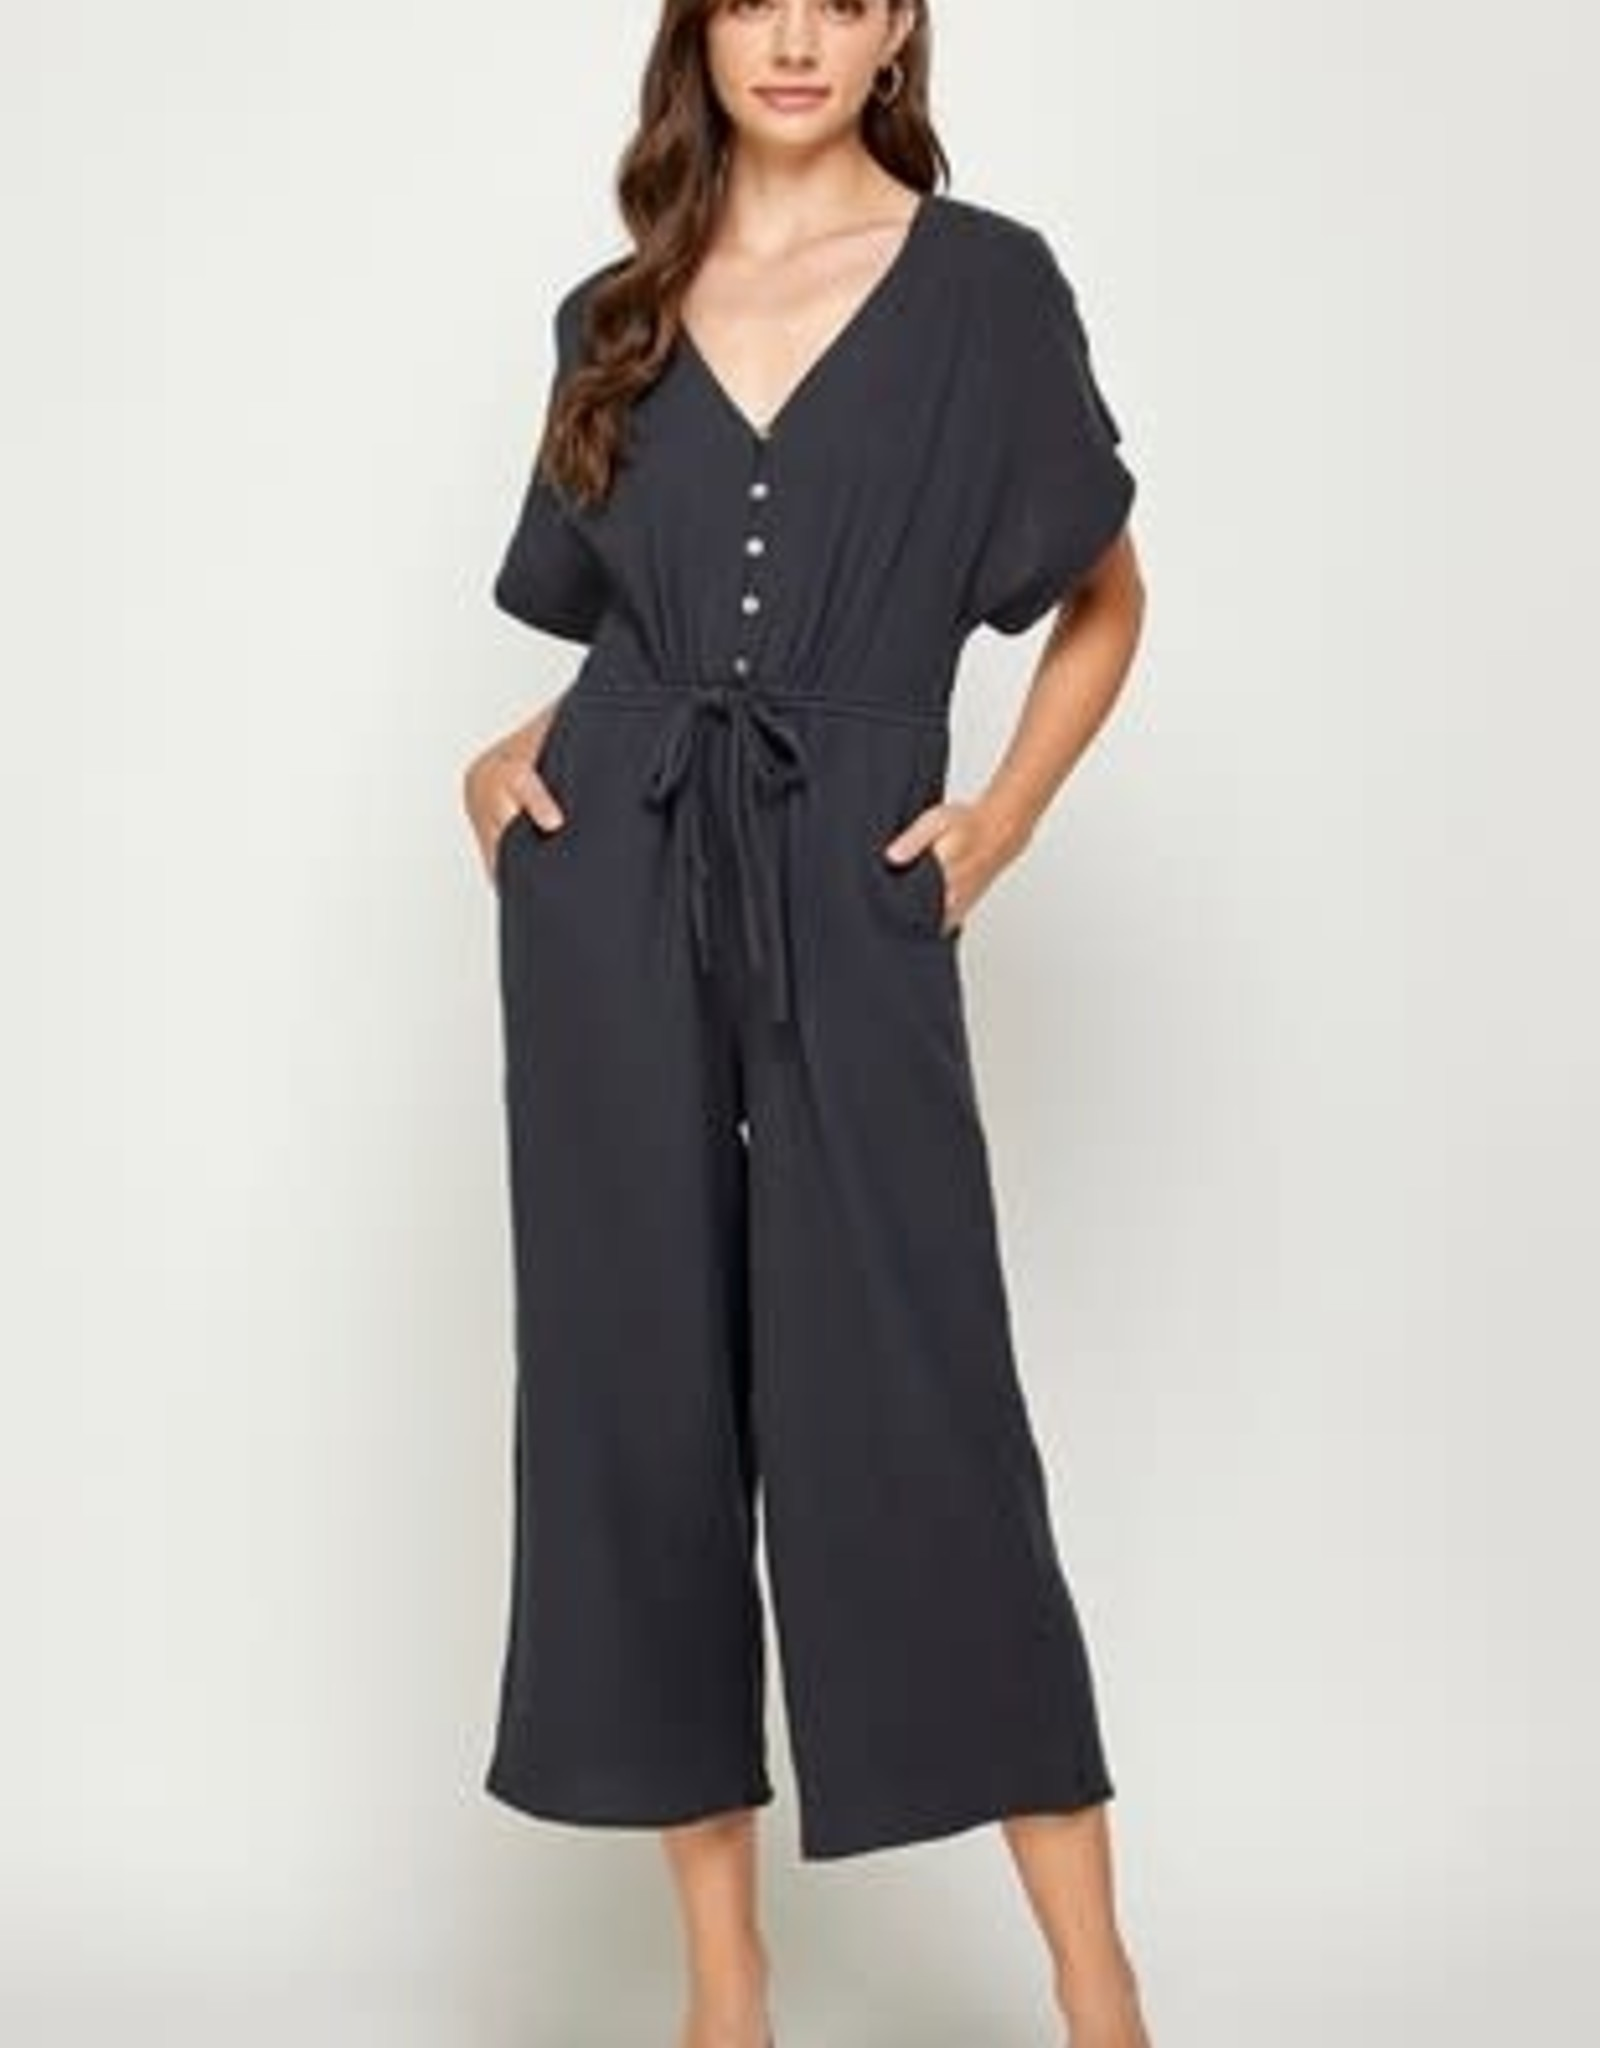 Miss Bliss Button Detail SS Romper- Charcoal